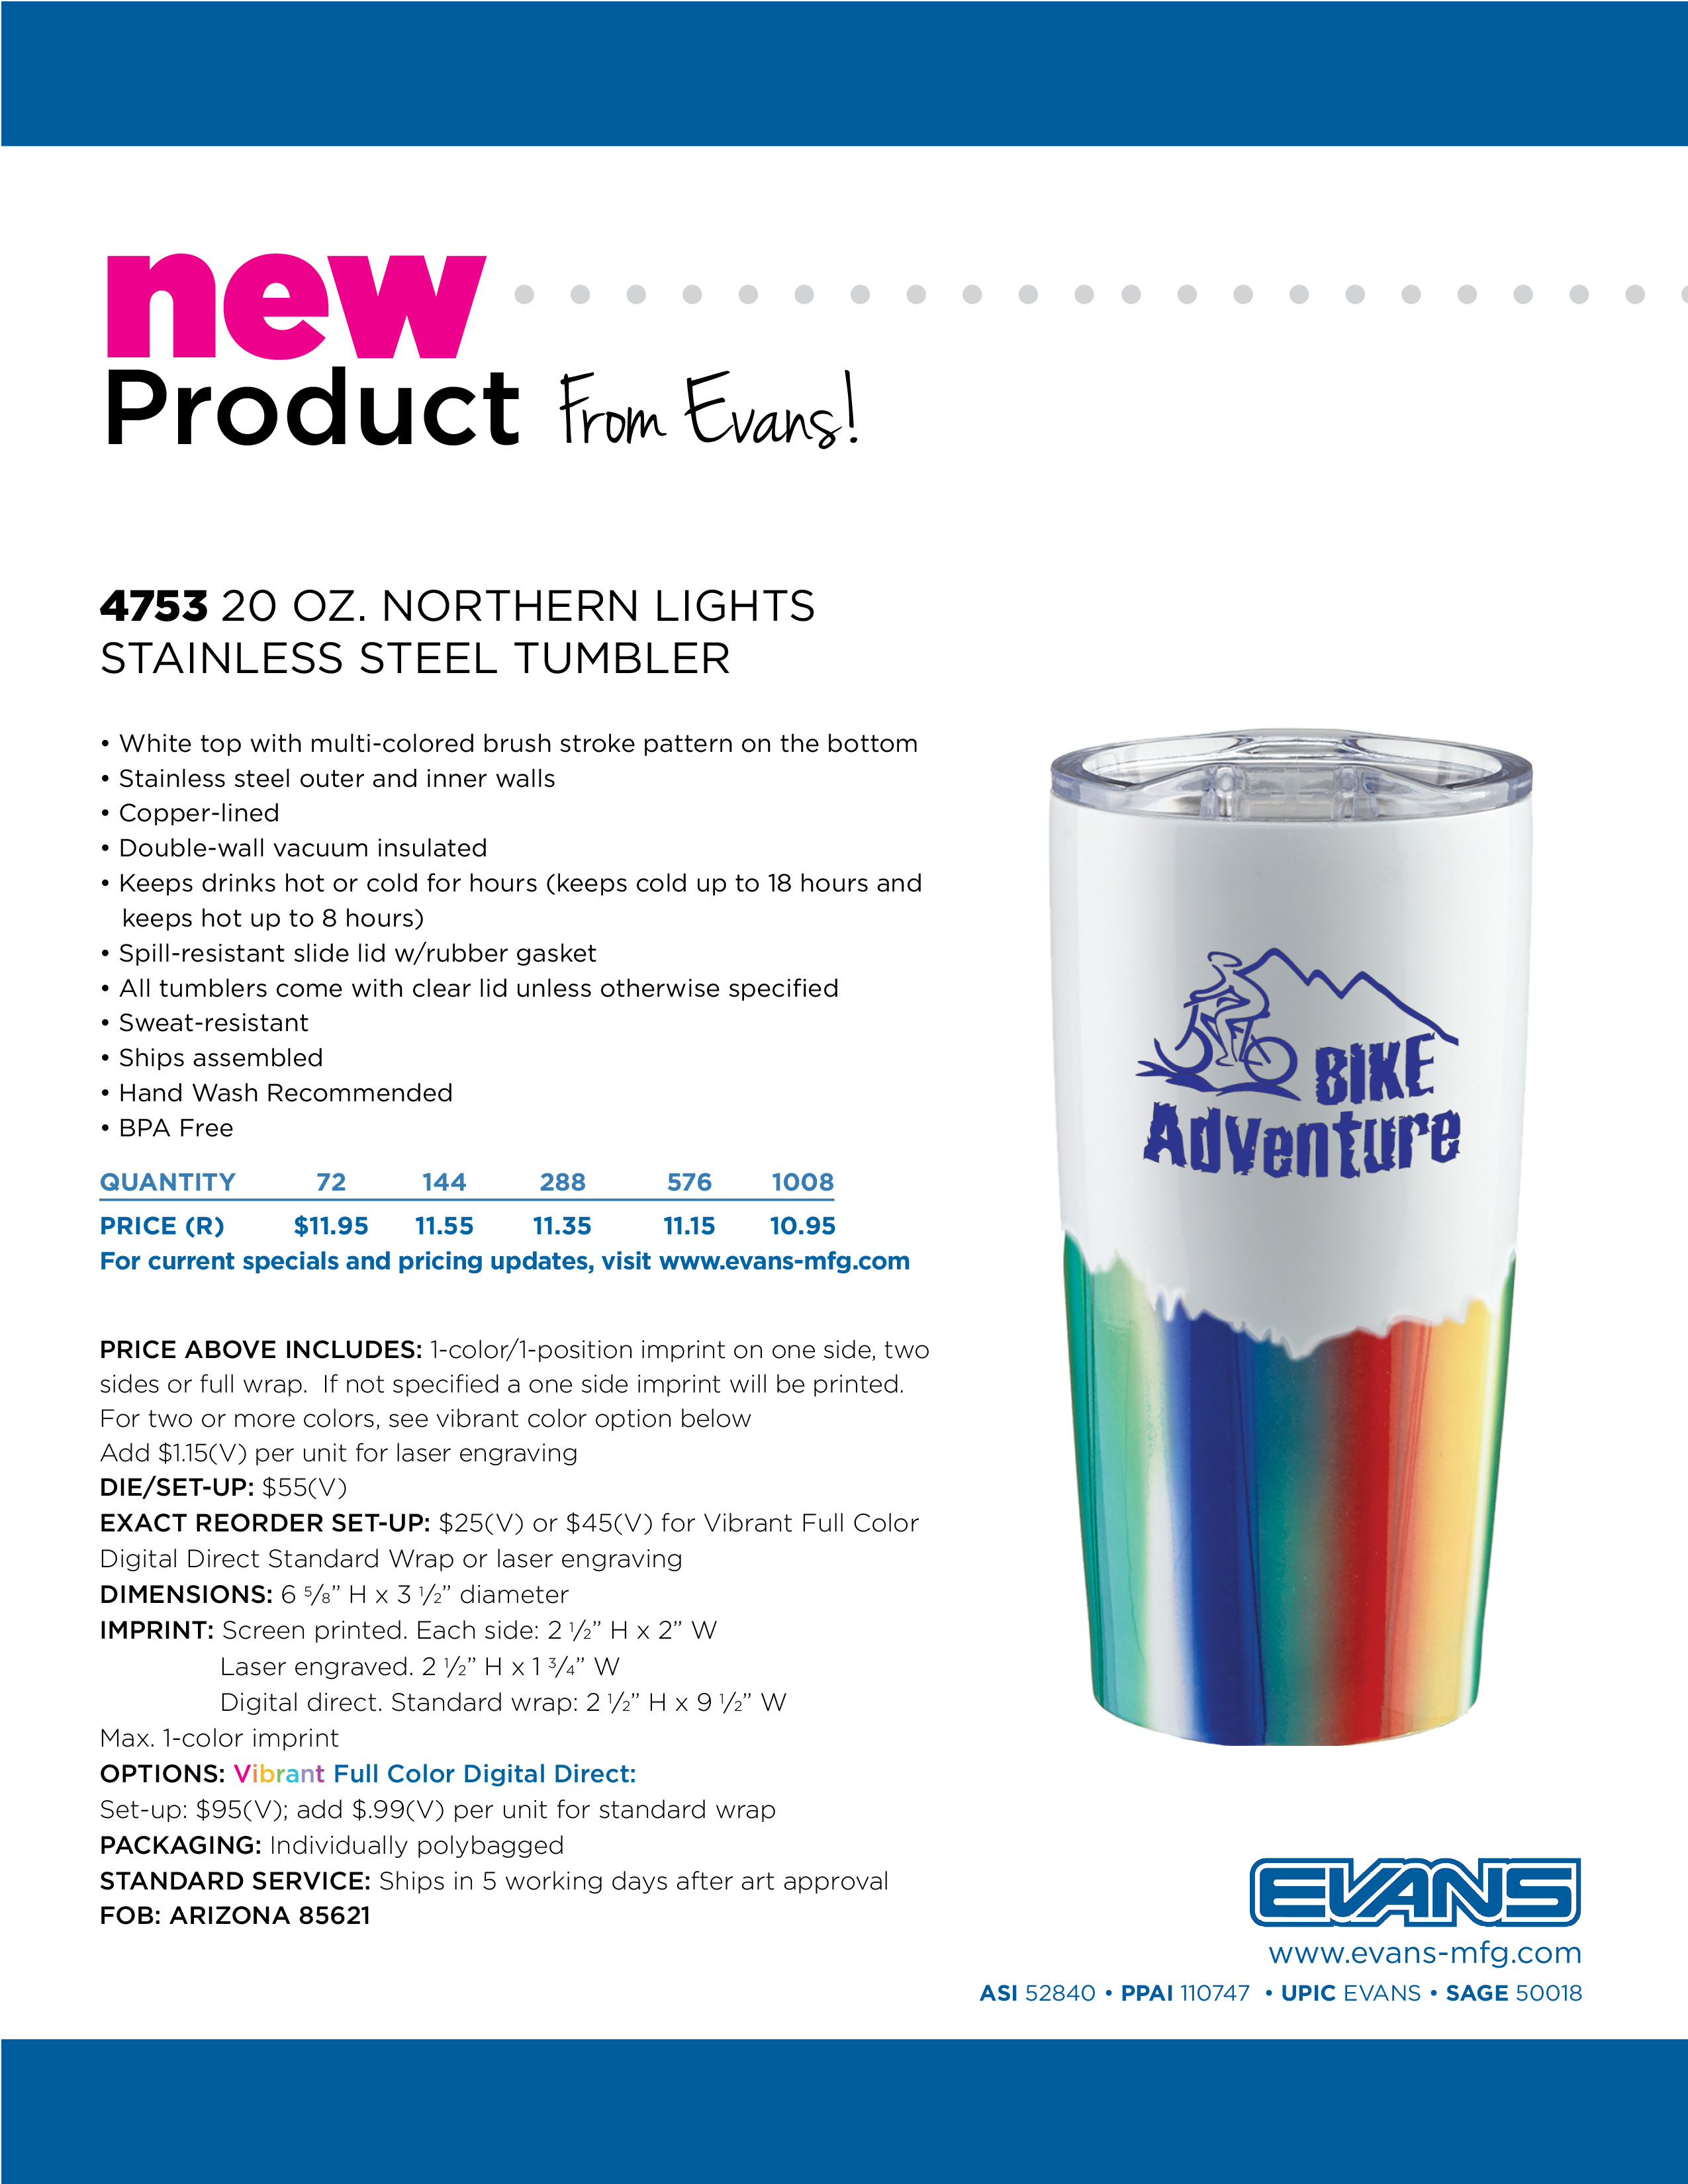 4753 20 oz. Norther Lights Stainless Steel Tumbler